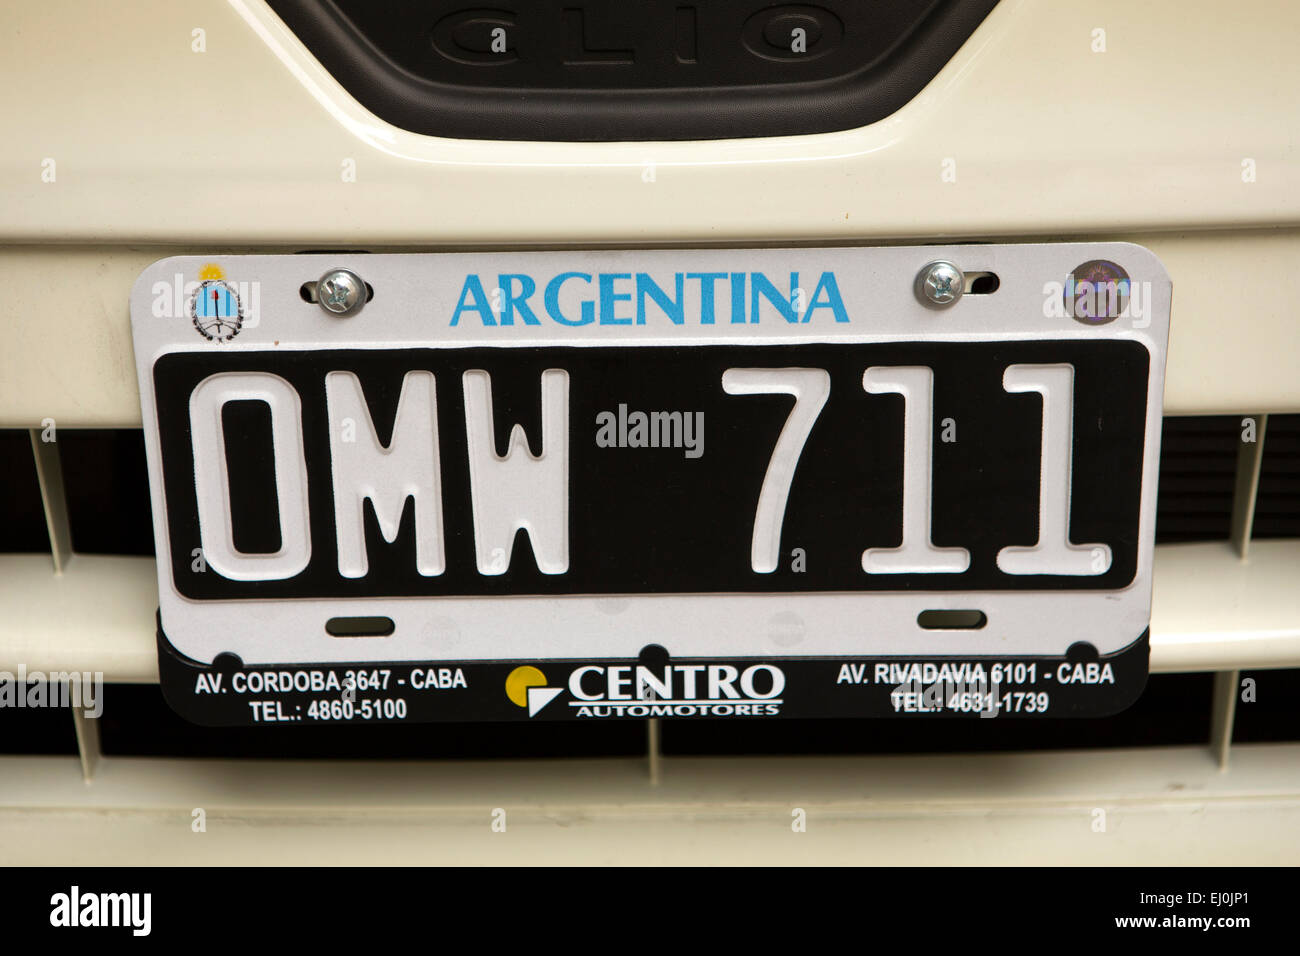 Vehicle Registration Plates Stock Photos & Vehicle Registration ...